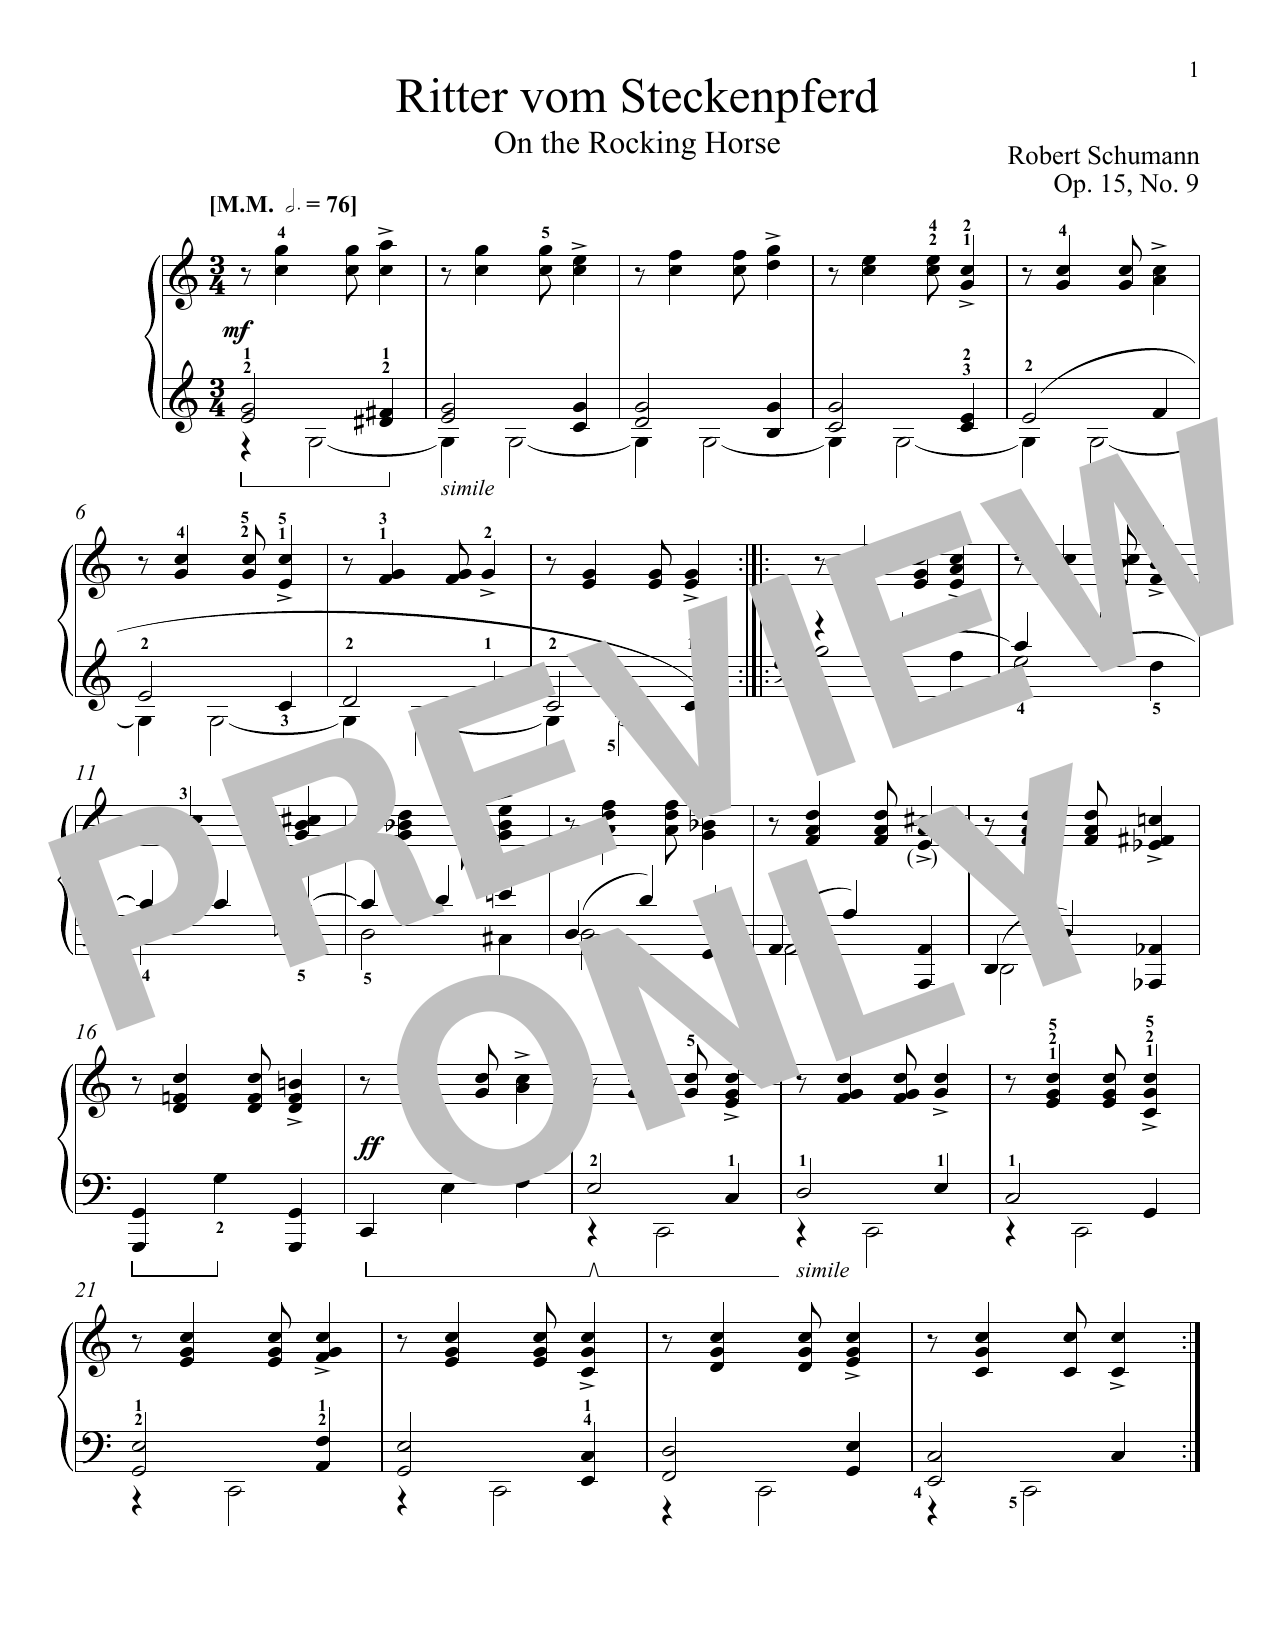 Robert Schumann The Knight Of The Rocking-Horse, Op. 15, No. 9 sheet music notes and chords. Download Printable PDF.